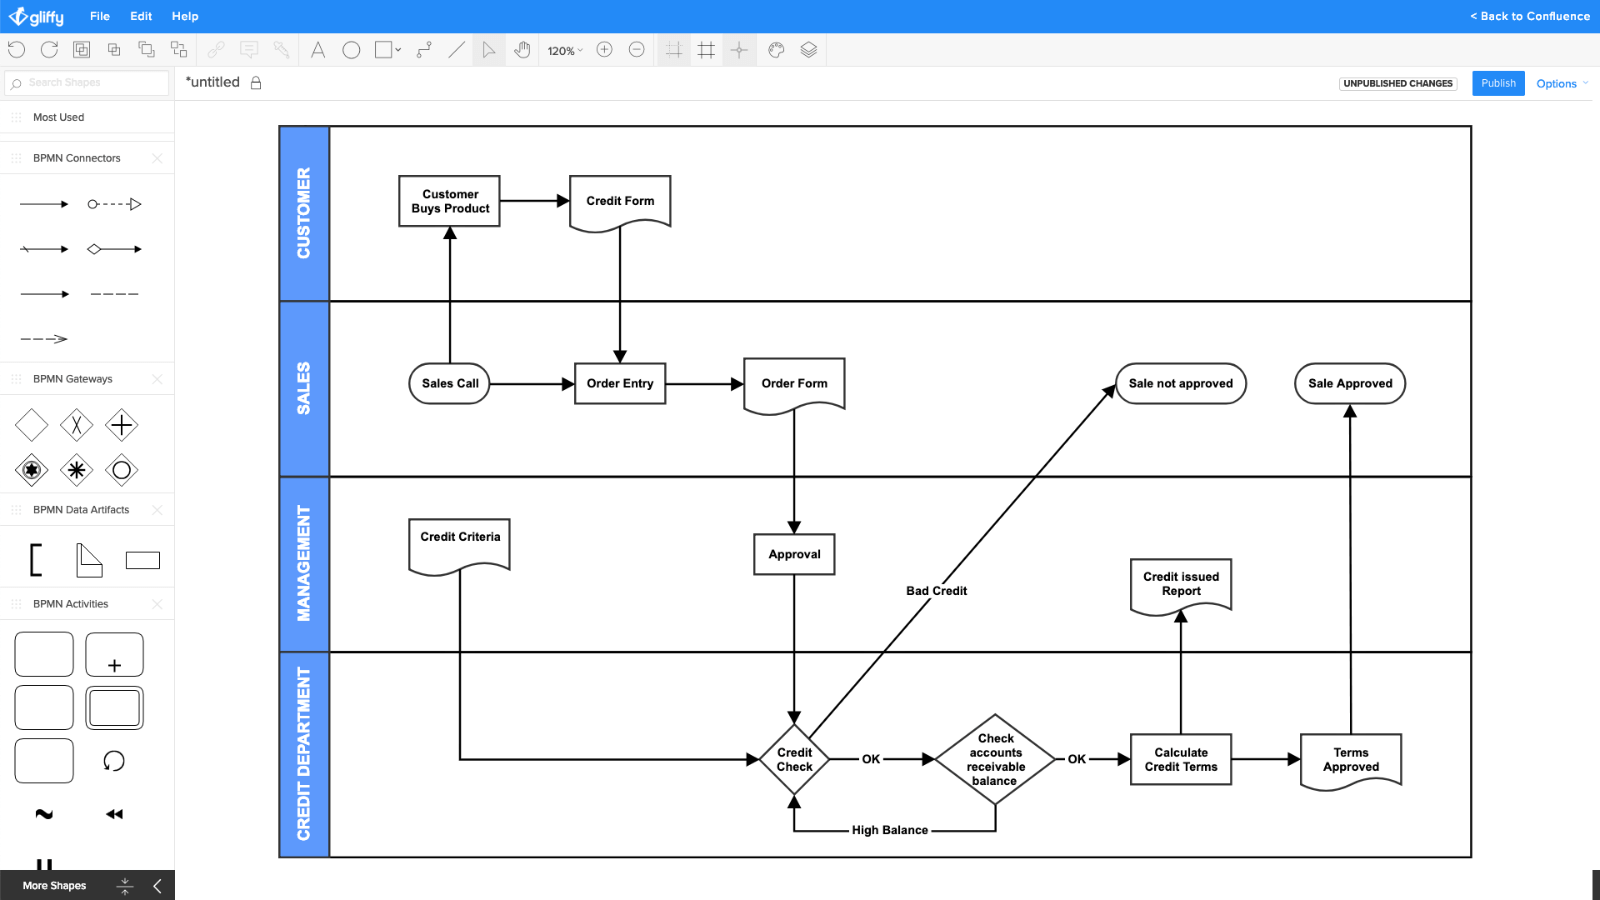 Sample eCommerce transaction process diagram courtesy of gliffy